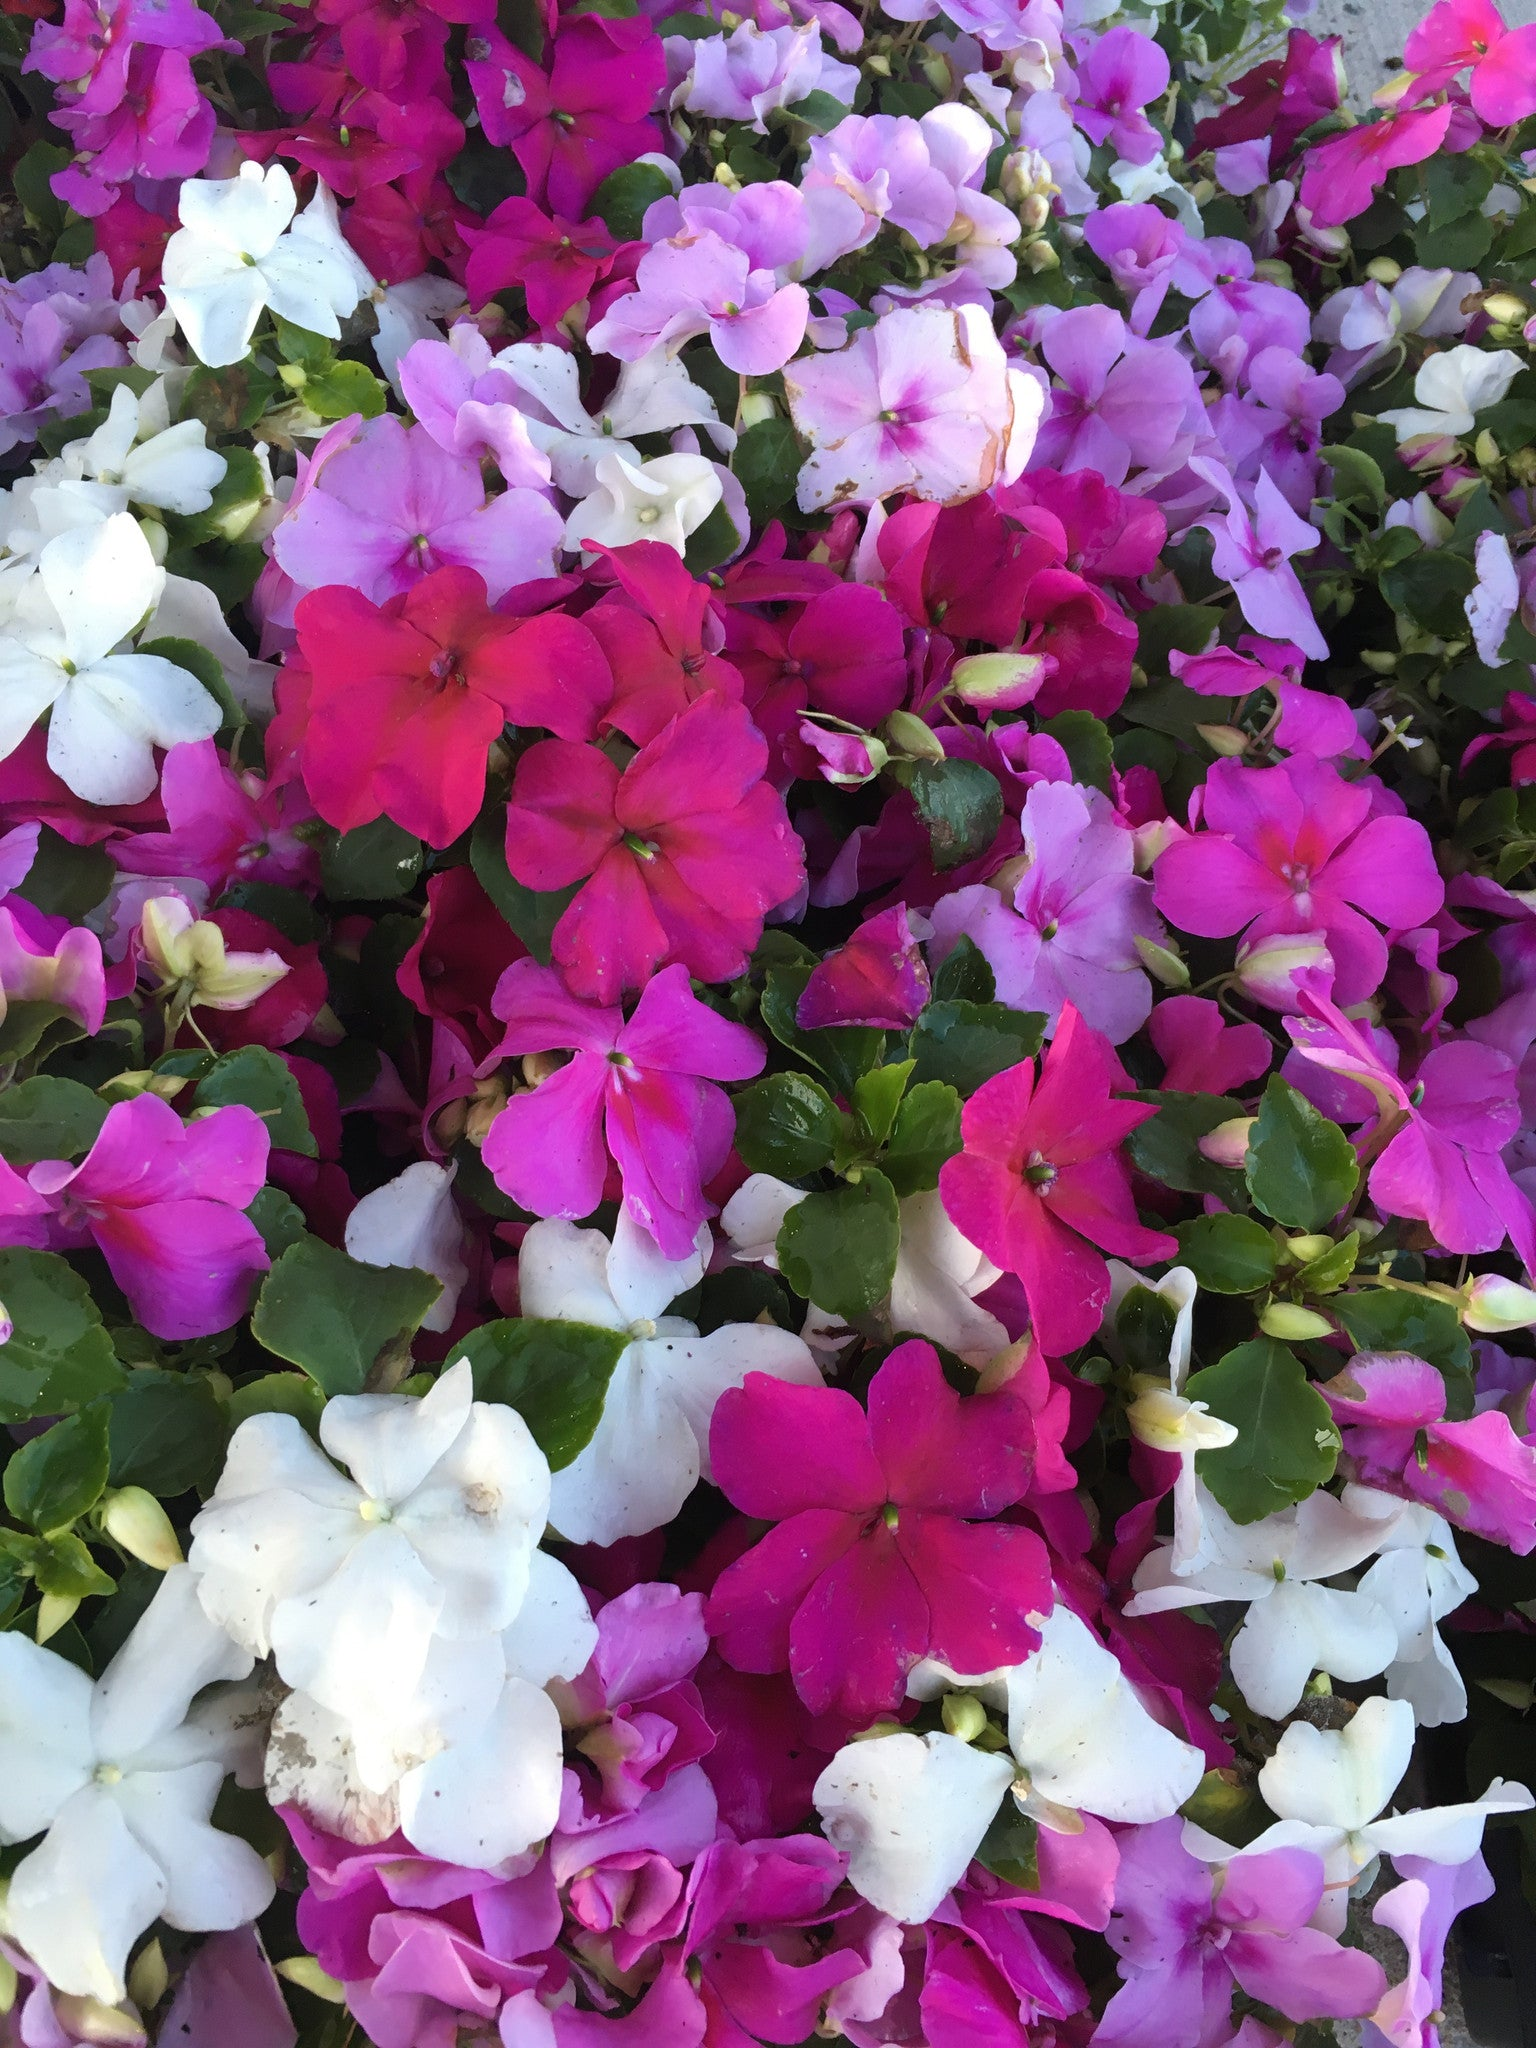 IMPATIENS SEASIDE MIX